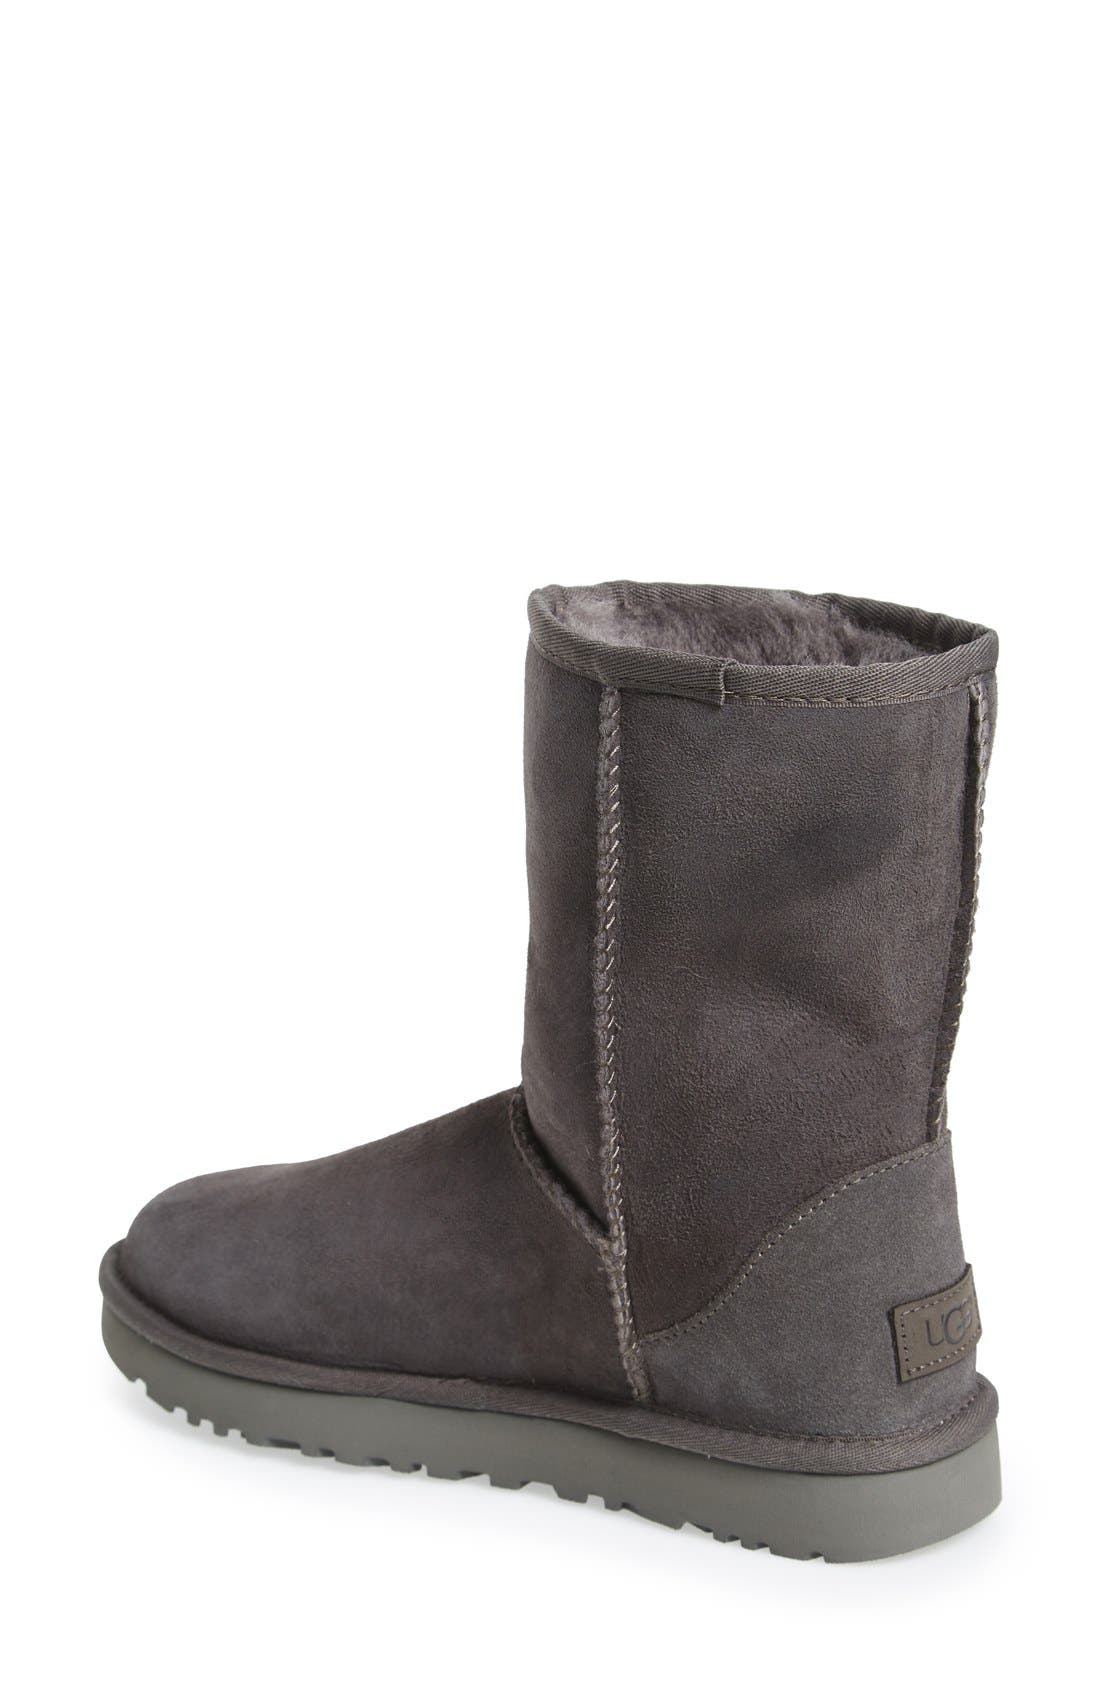 'Classic II' Genuine Shearling Lined Short Boot,                             Alternate thumbnail 2, color,                             Grey Suede